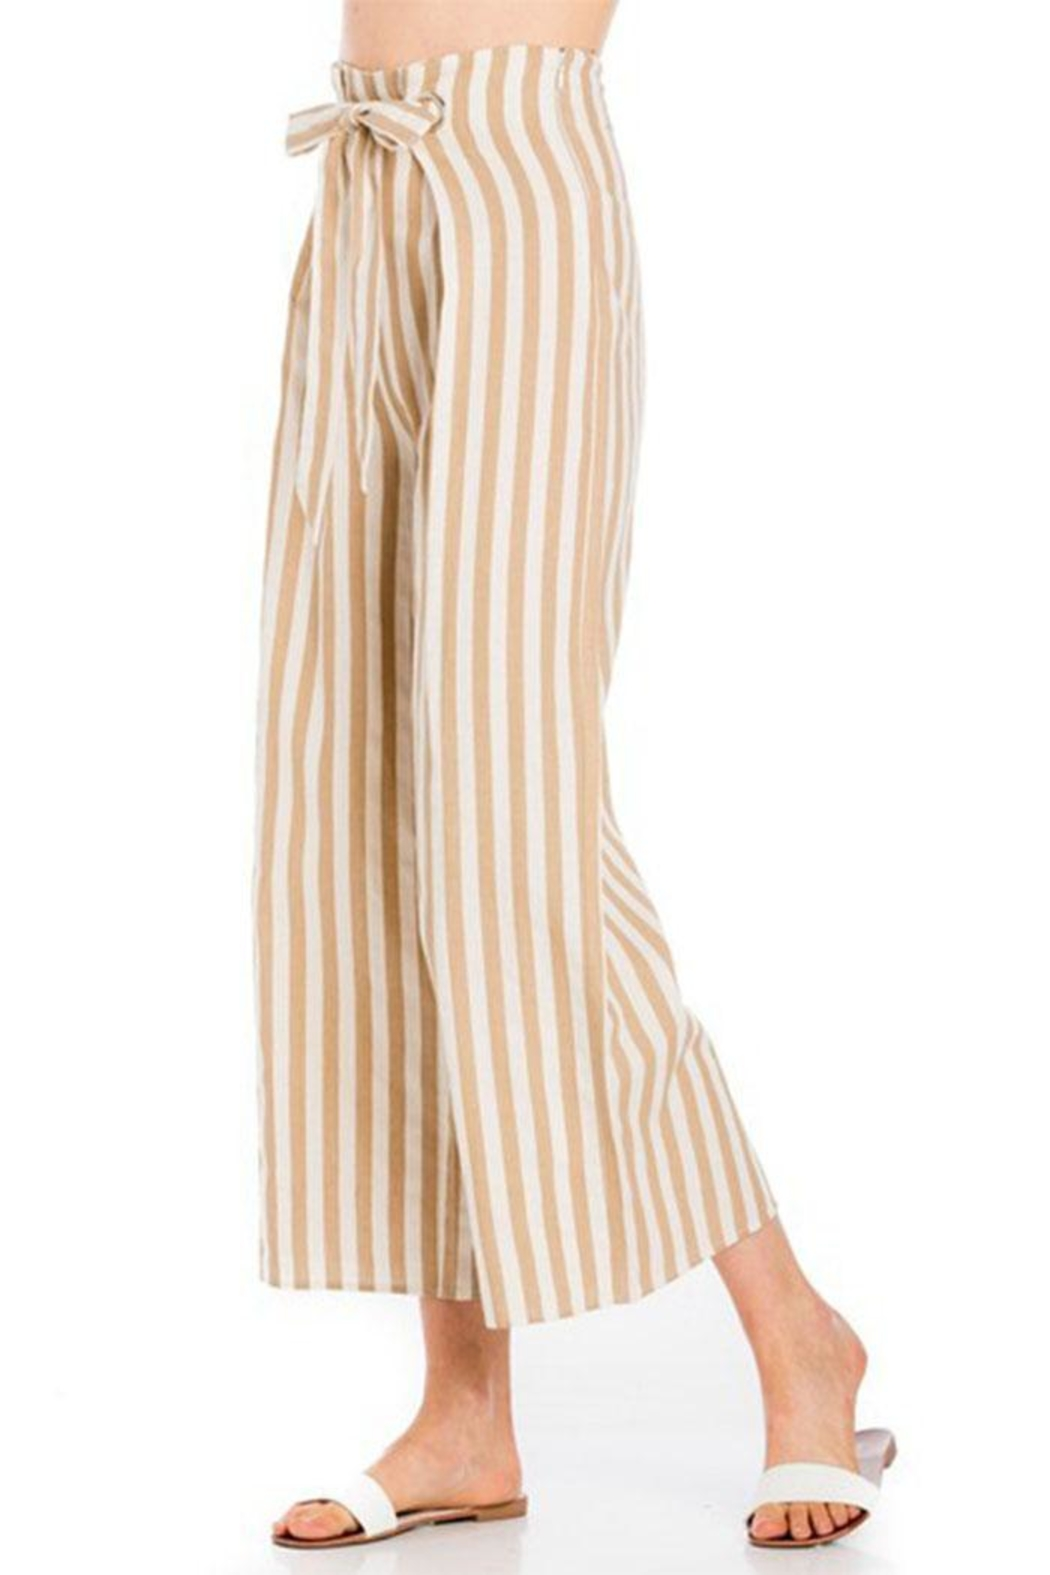 lunik Striped Tie Pants - Front Full Image